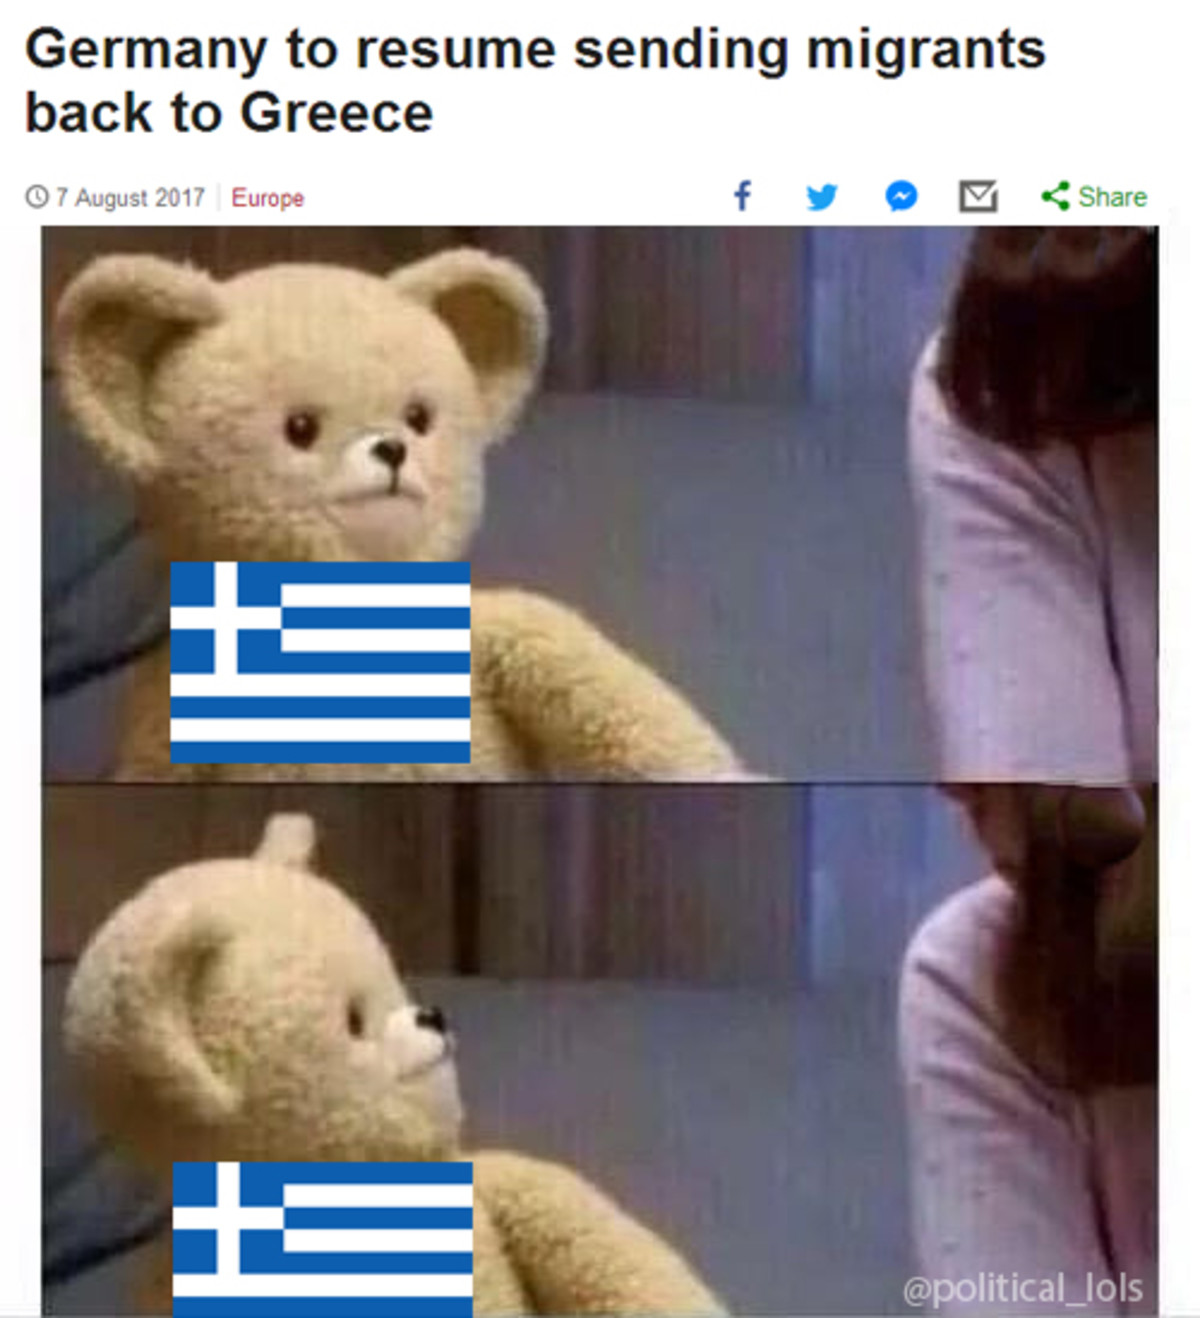 A moment of silence for Greece. http://www.bbc.com/news/world-europe-40850938 .